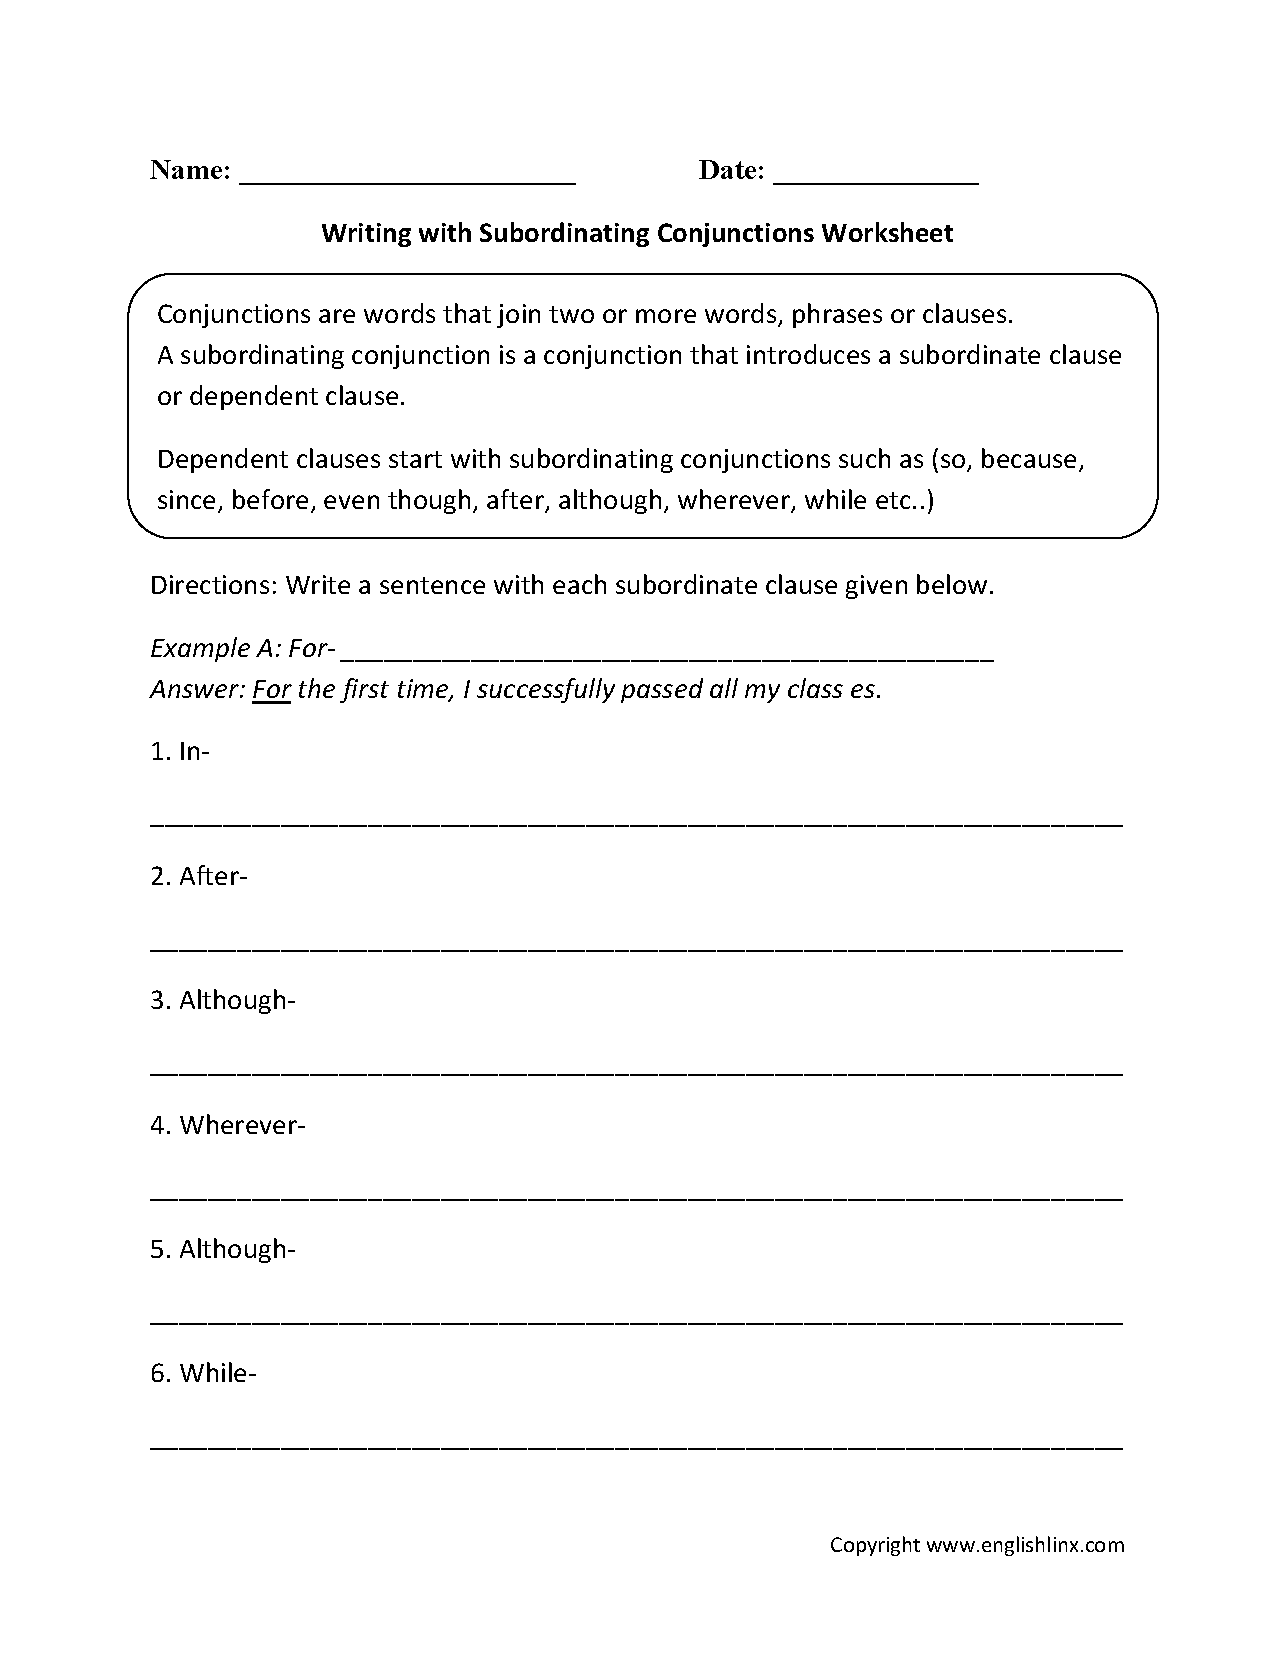 Conjunctions Worksheets | Writing with Subordinating Conjunctions ...